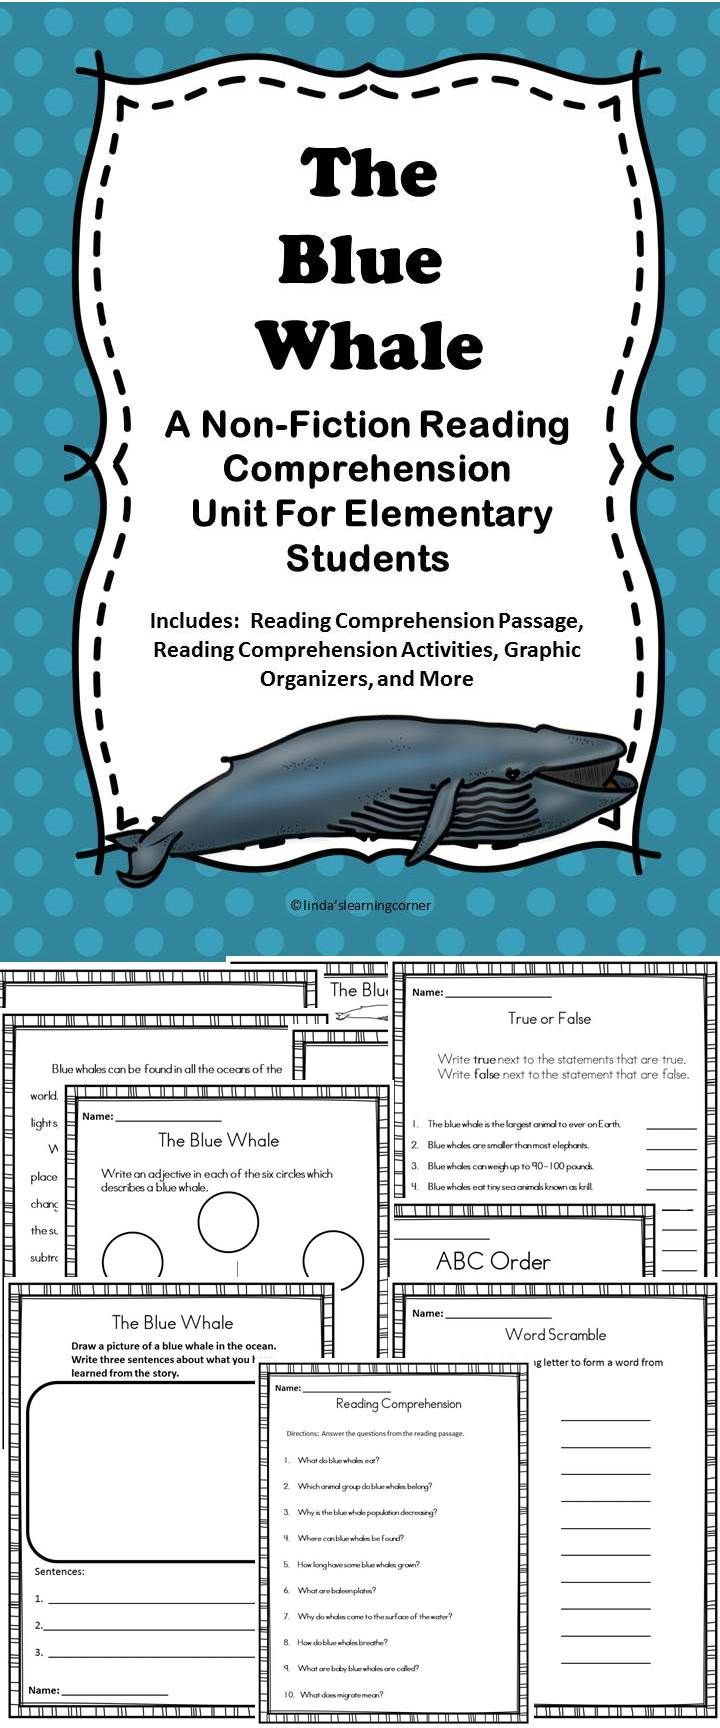 The Blue Whale | Education | Pinterest | Reading comprehension ...